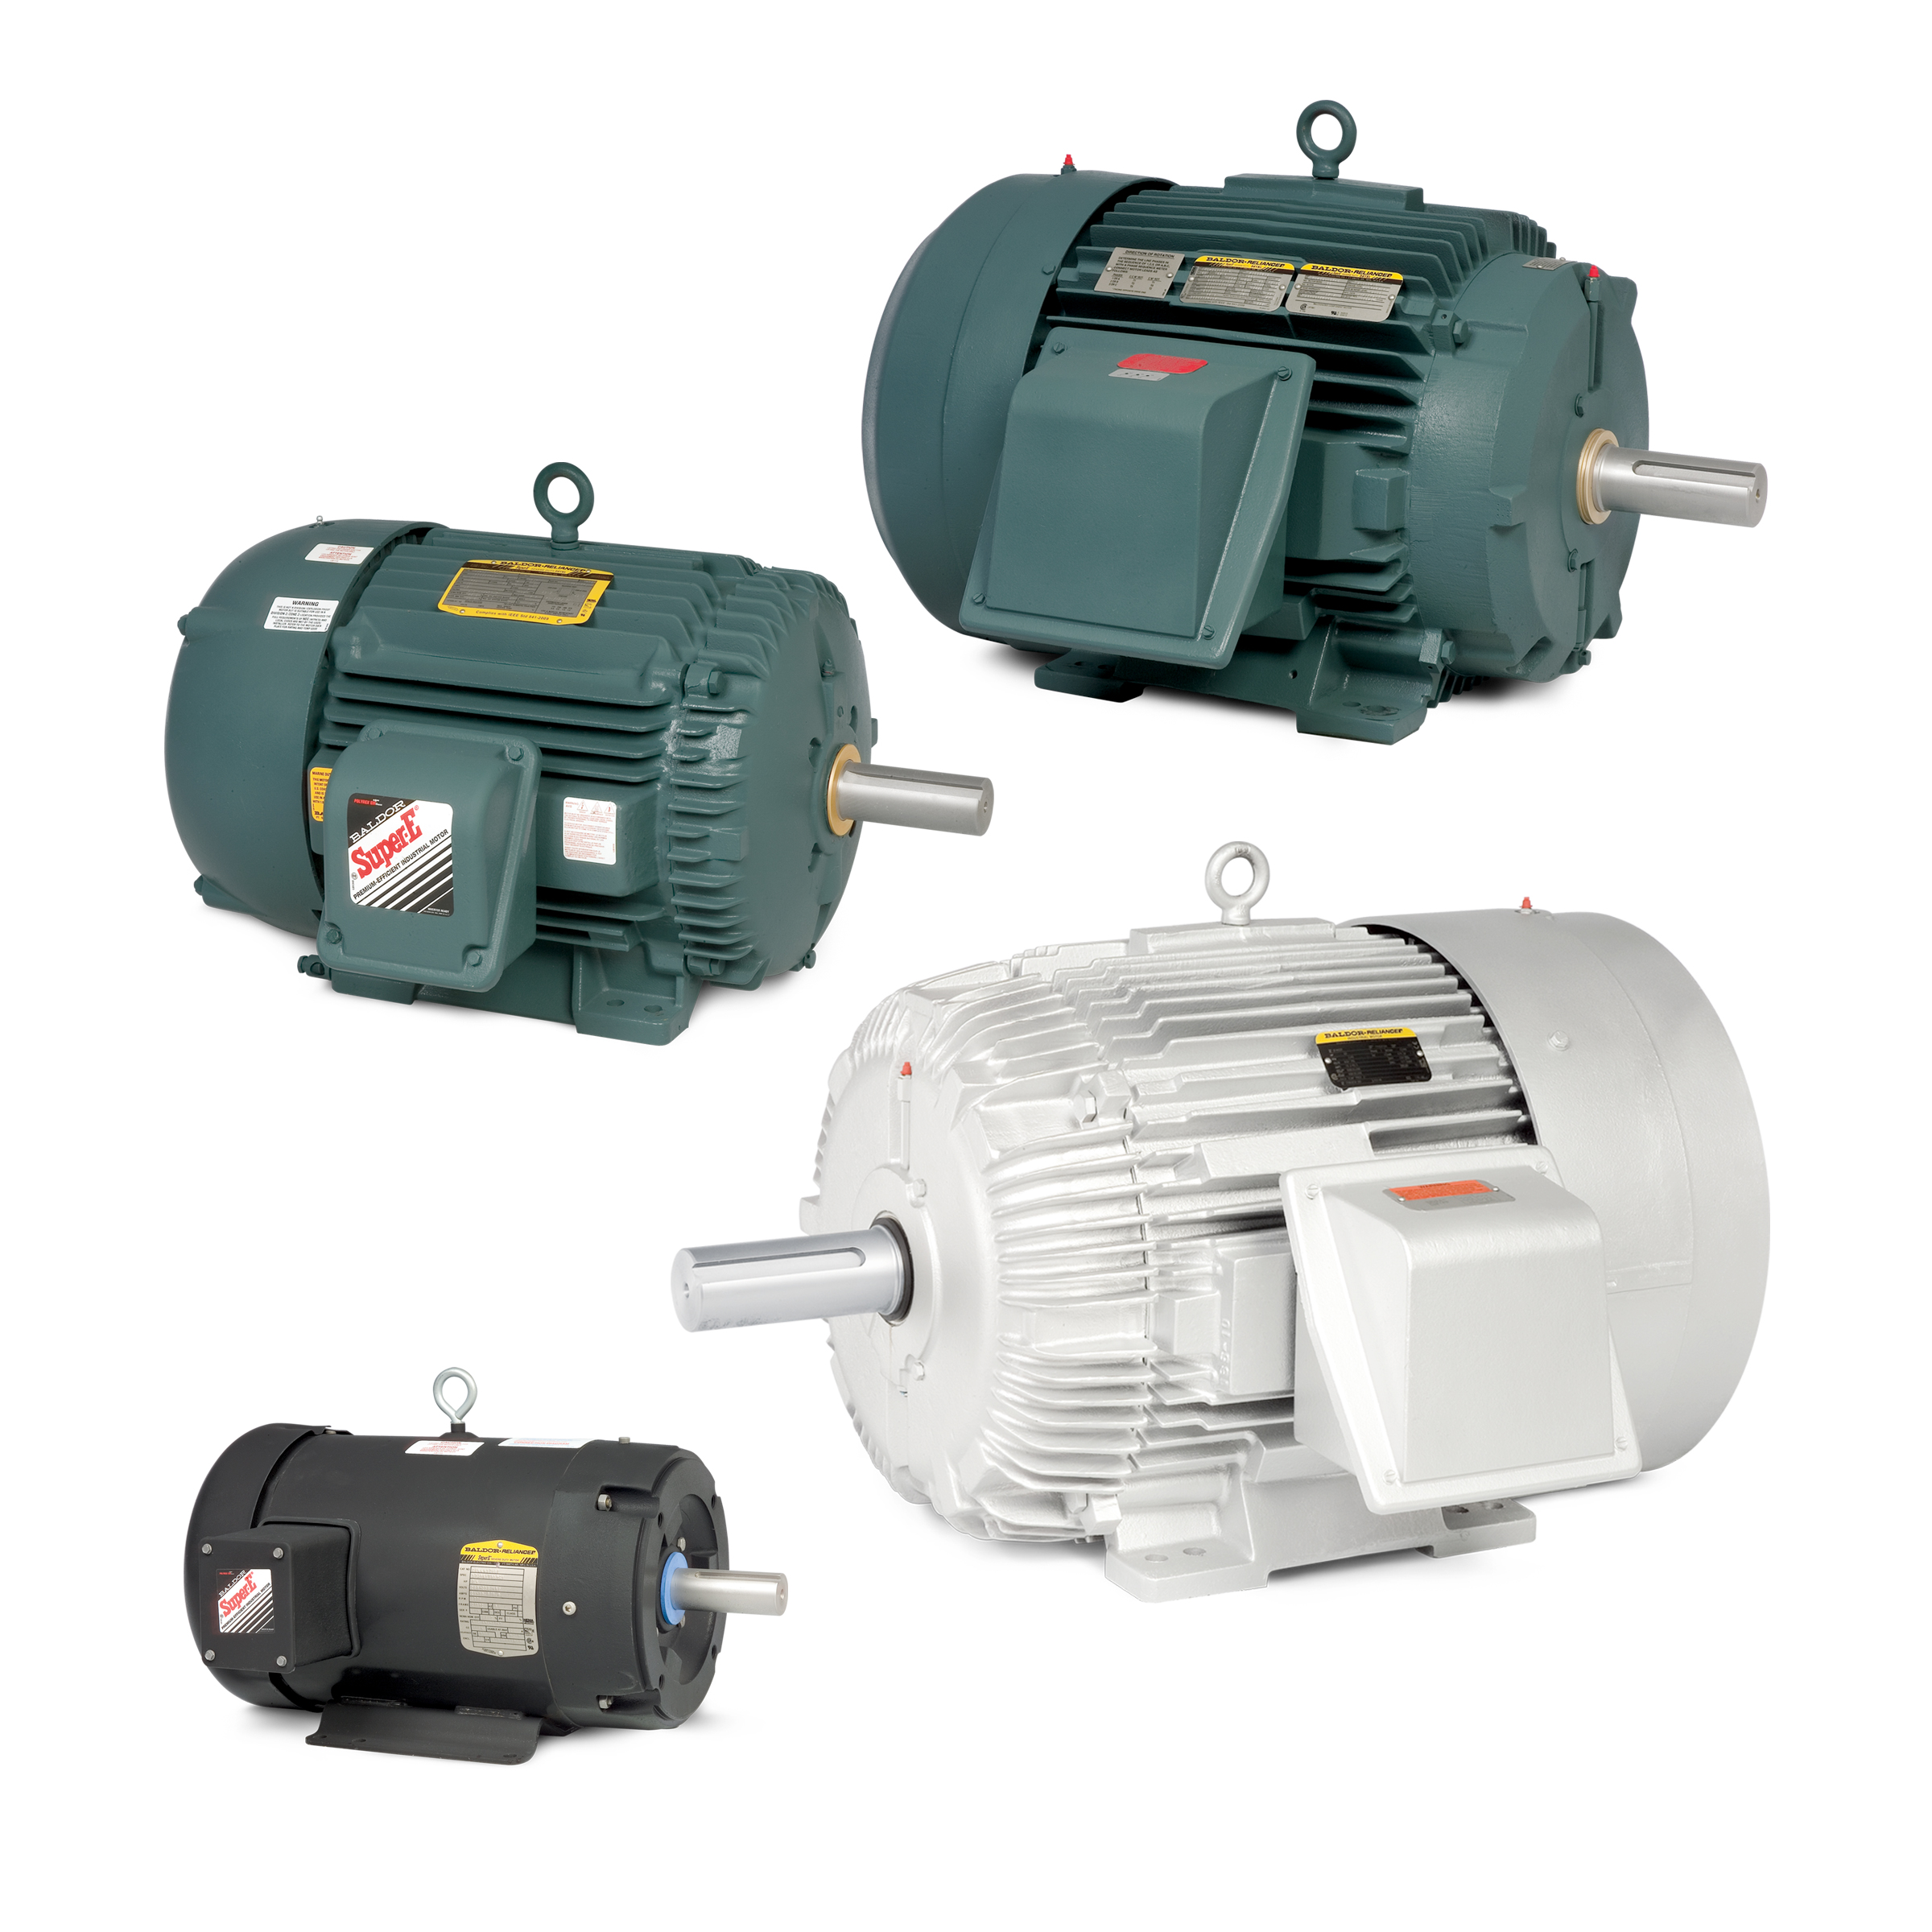 baldor reliance ac severe duty motor family.ashx?bc=white&as=1&w=1024 ac motors baldor com reliance duty master ac motor wiring diagram at alyssarenee.co